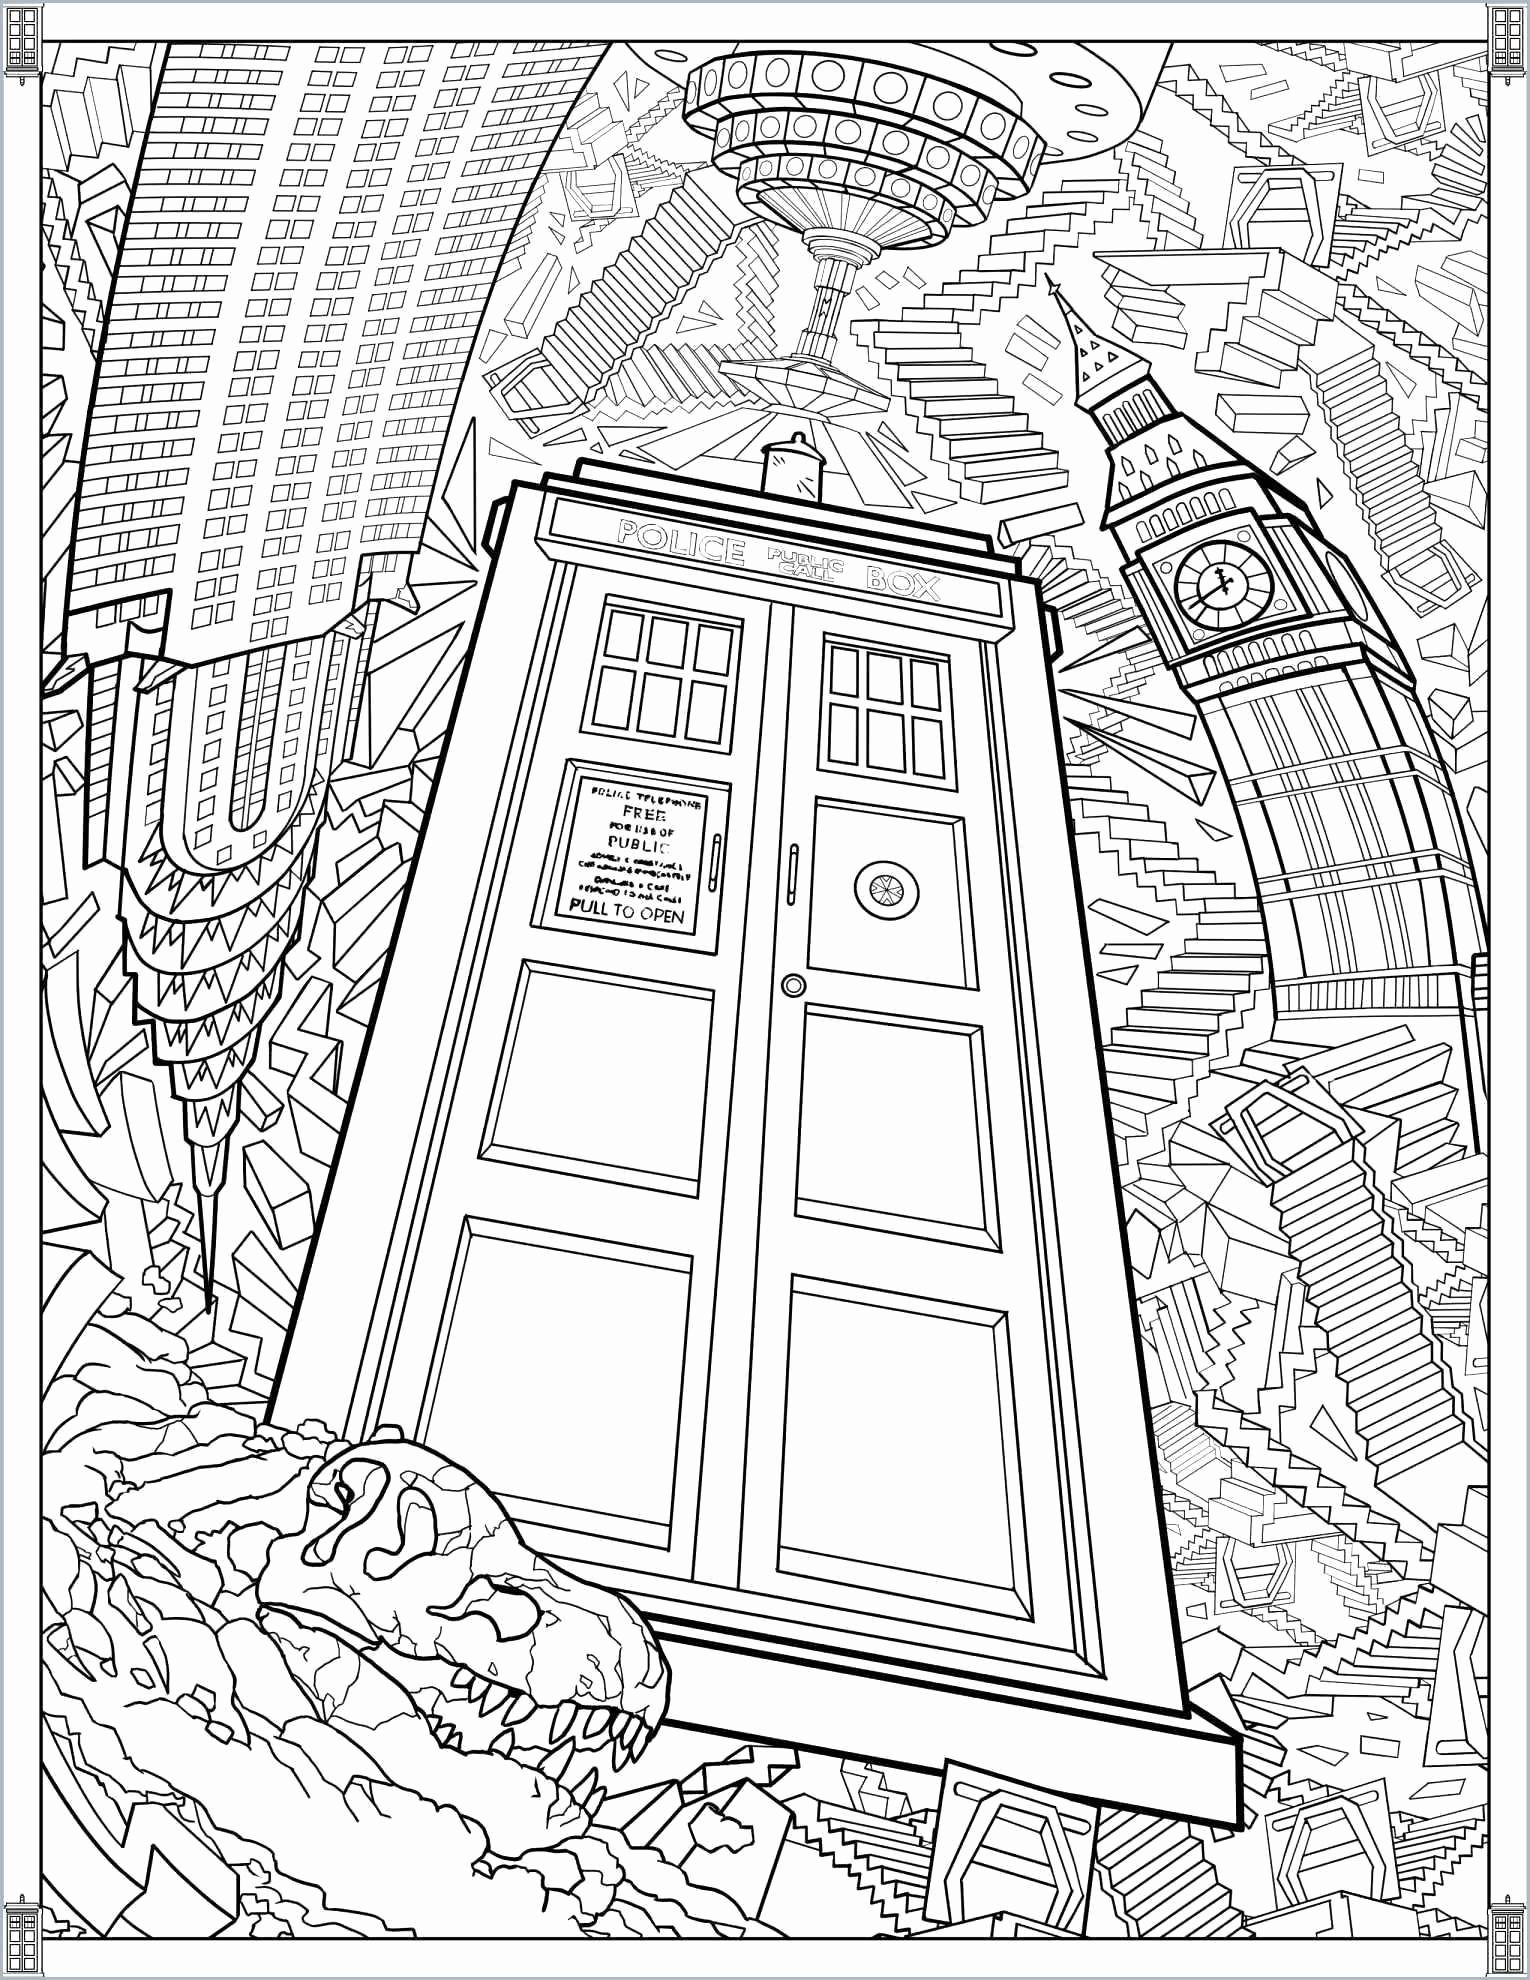 Polar Express Coloring Pages Polar Express Coloring Pages